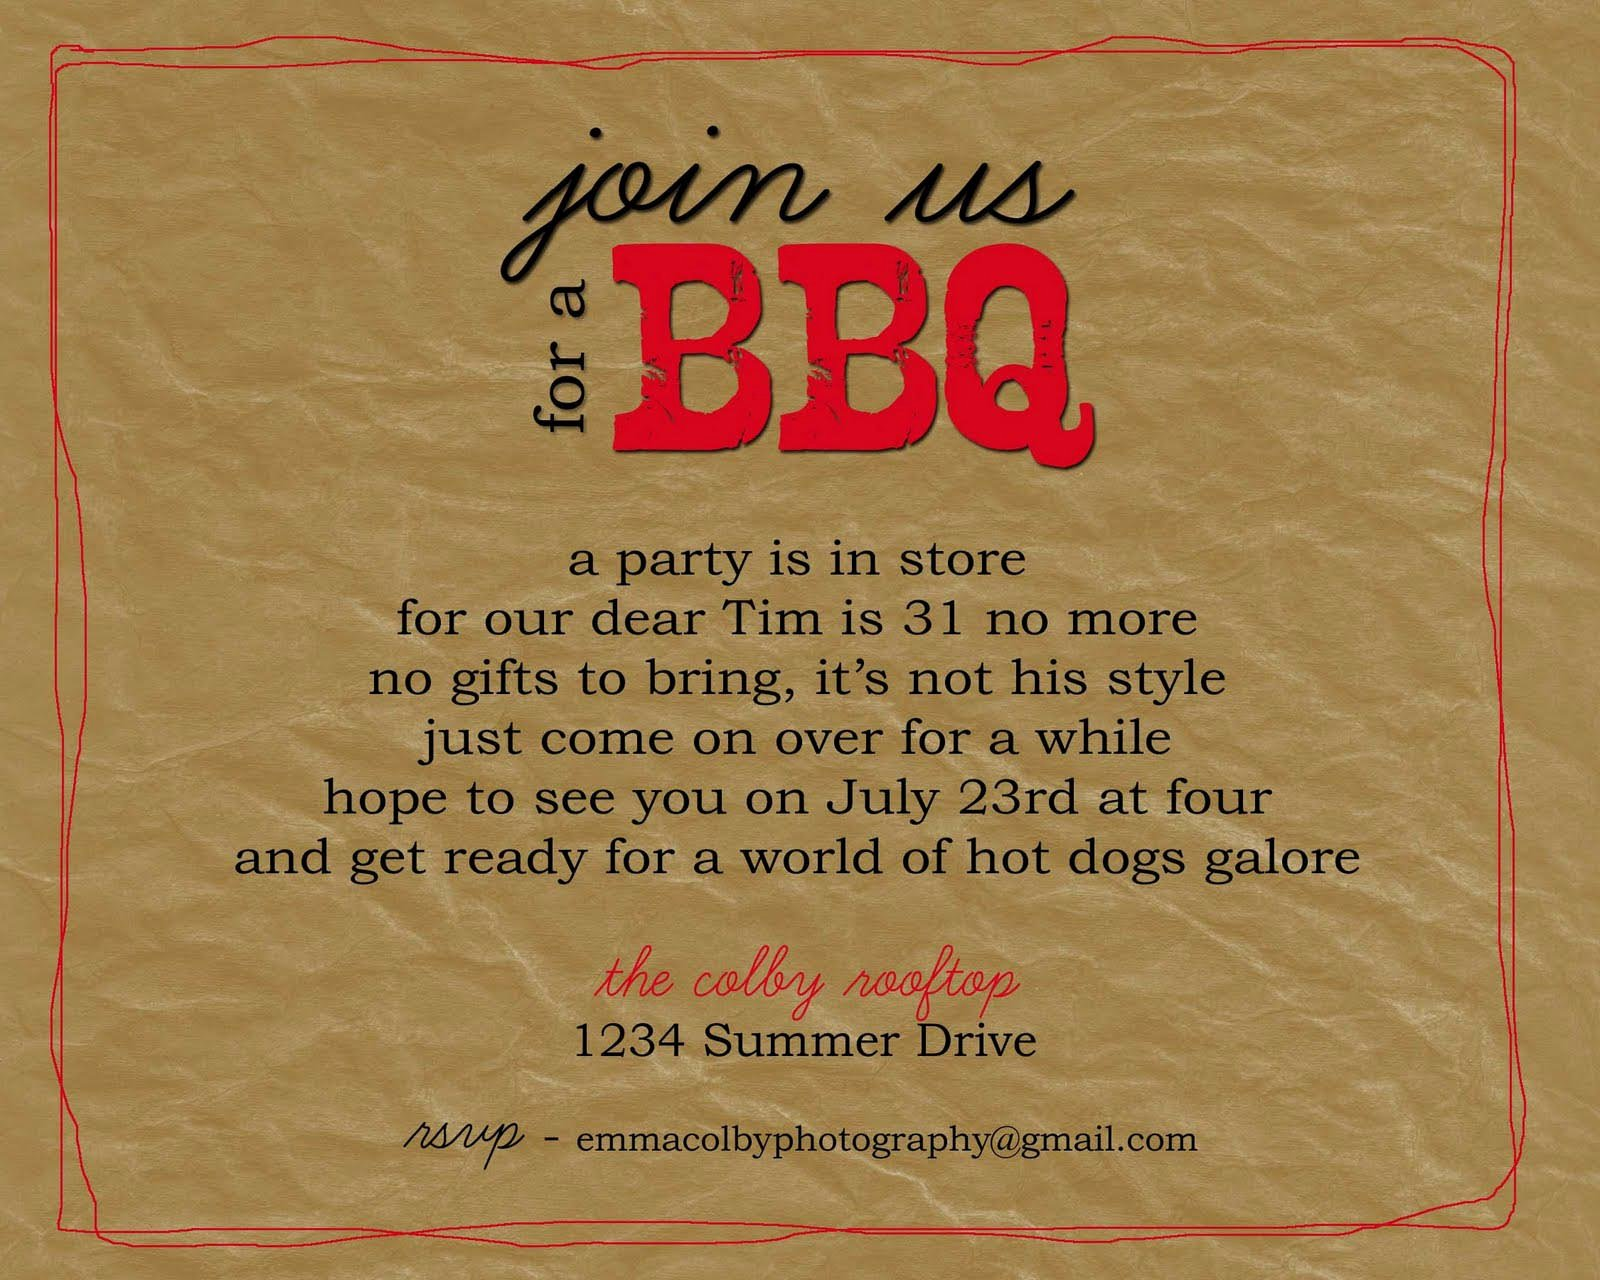 Bbq Party Invitation Wording Fresh Bbq Party Invitation Wording